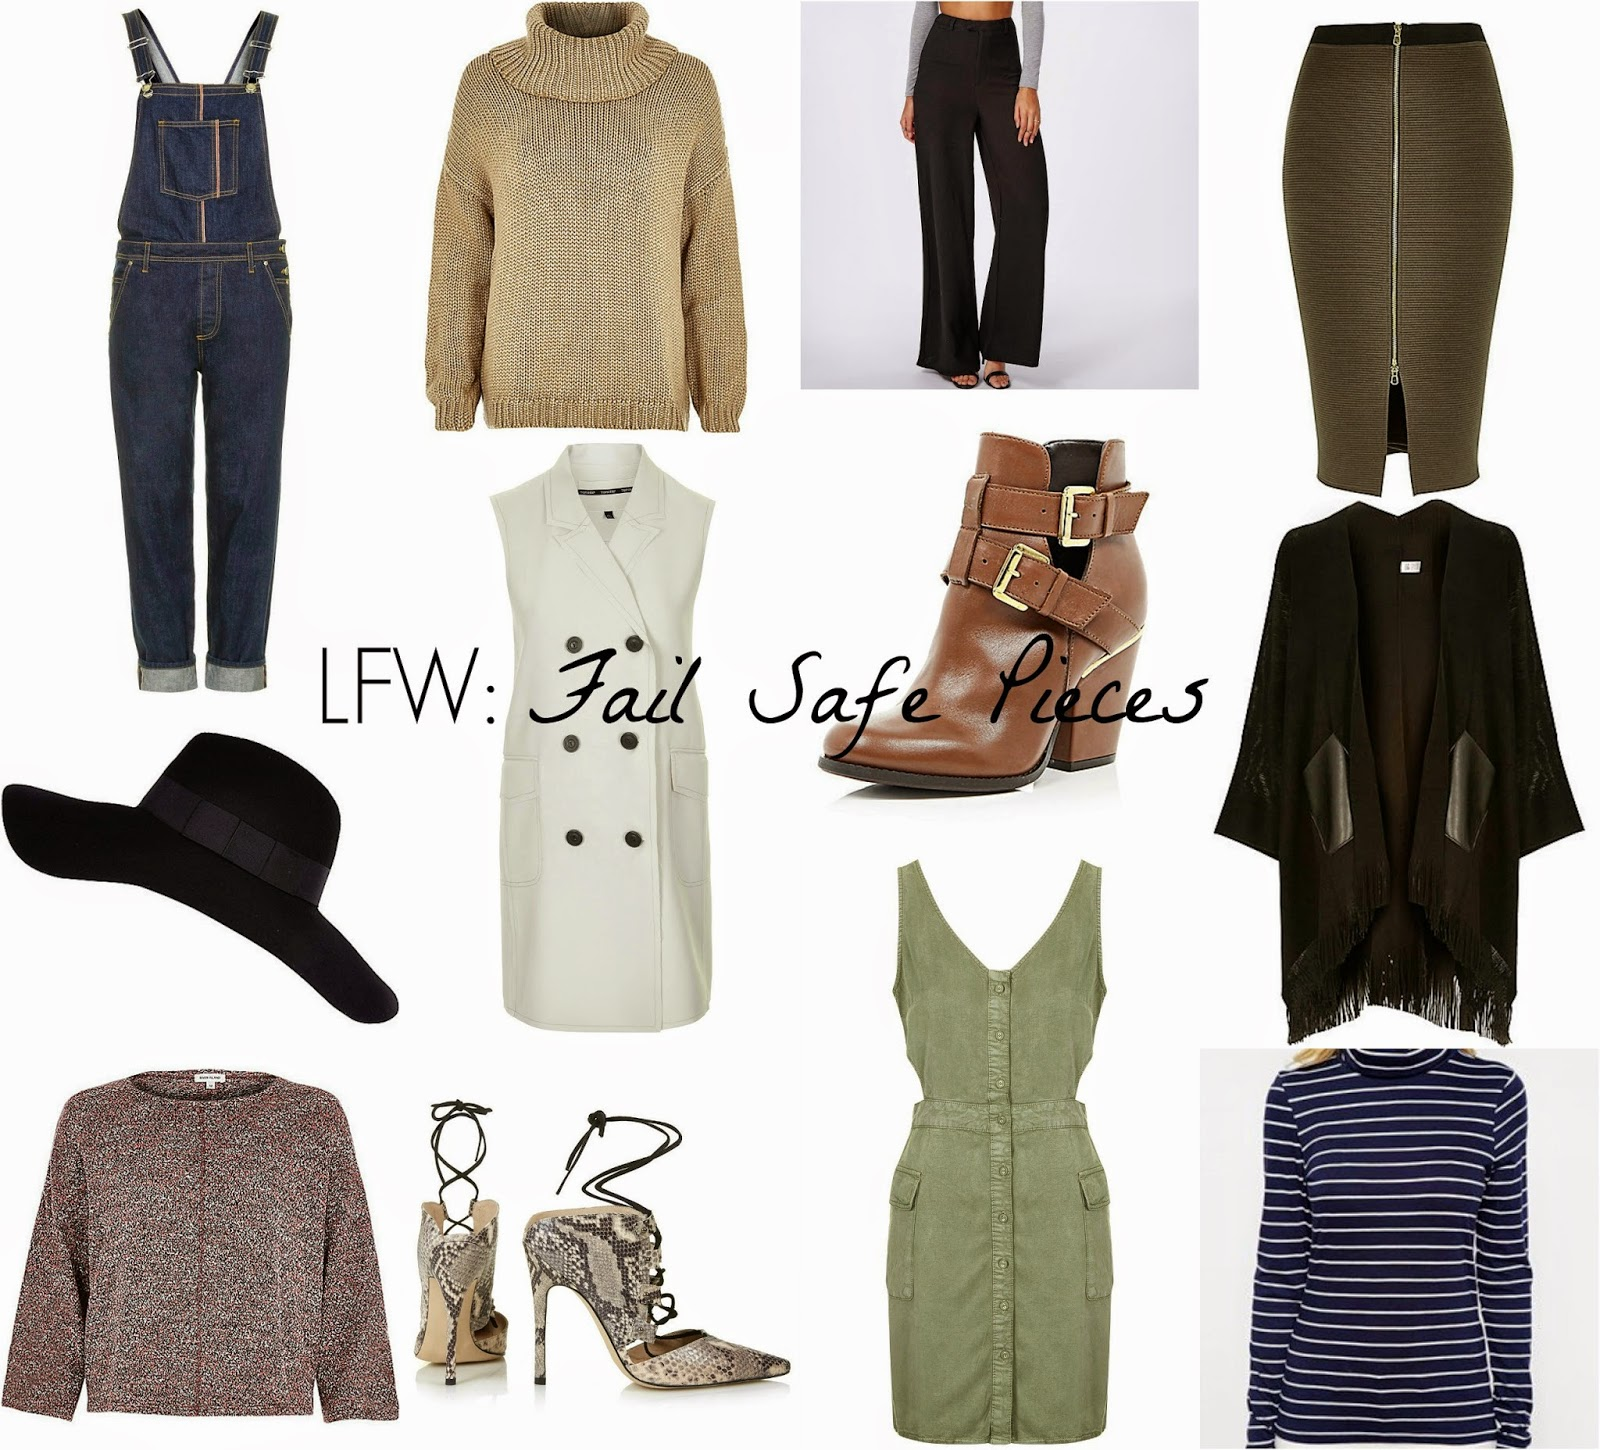 london fashion week, top picks, fashion week uniform, currently coveting, styling, investment pieces, river island, topshop, missguided, lfw